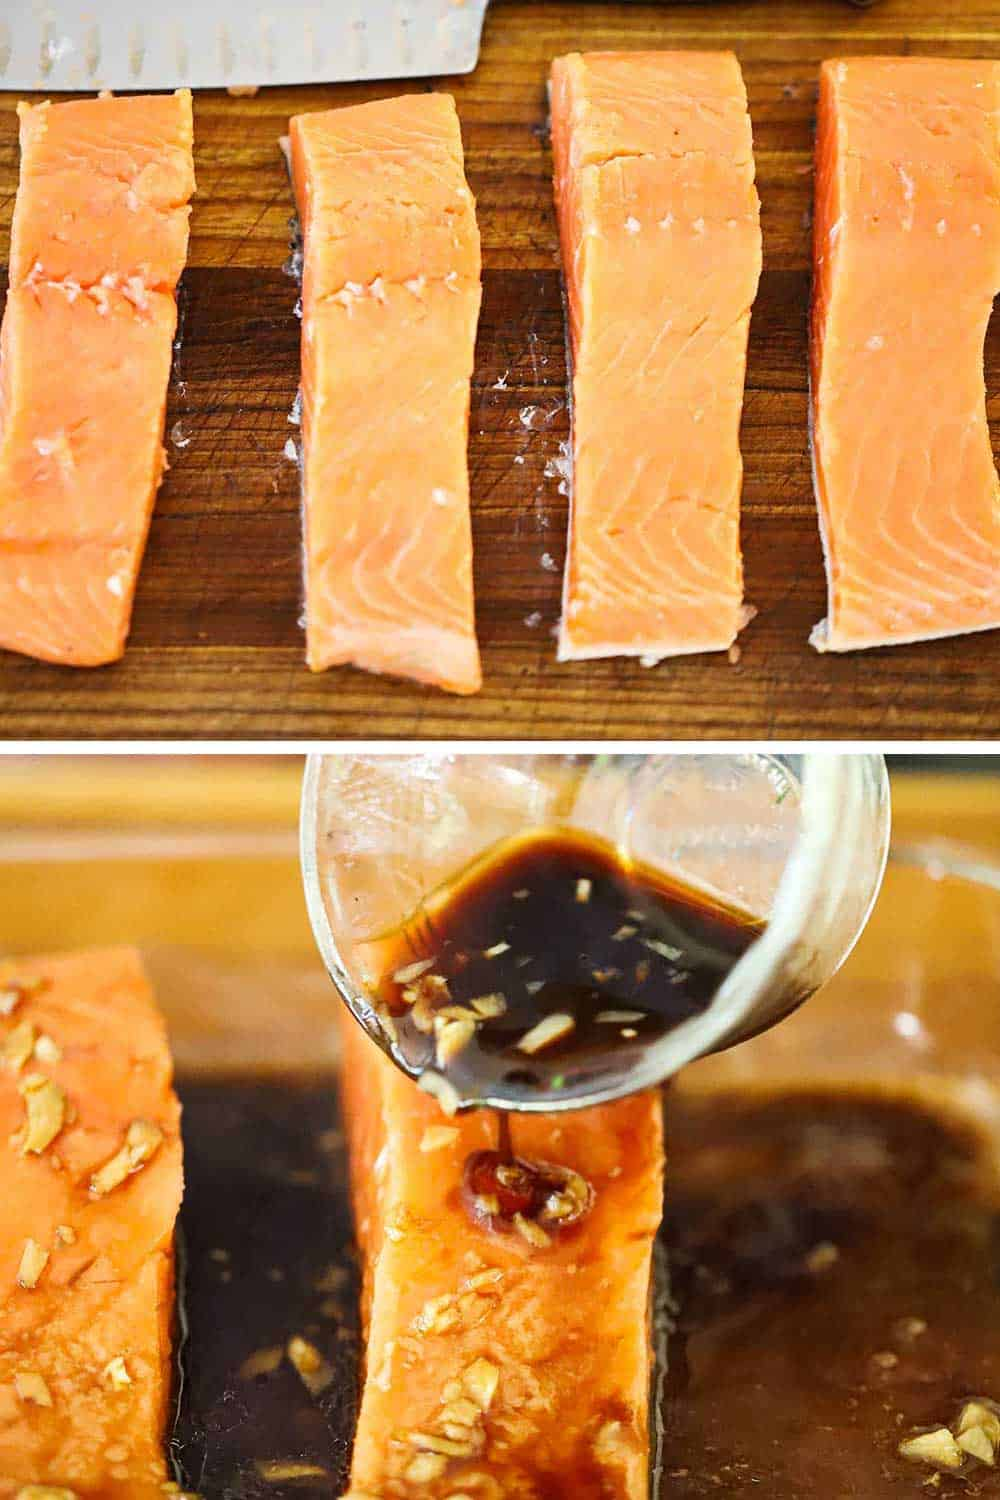 2 stacked images with the top 4 fresh salmon fillets and the bottom a small glass bowl that a dark marinade is being poured over the salmon.